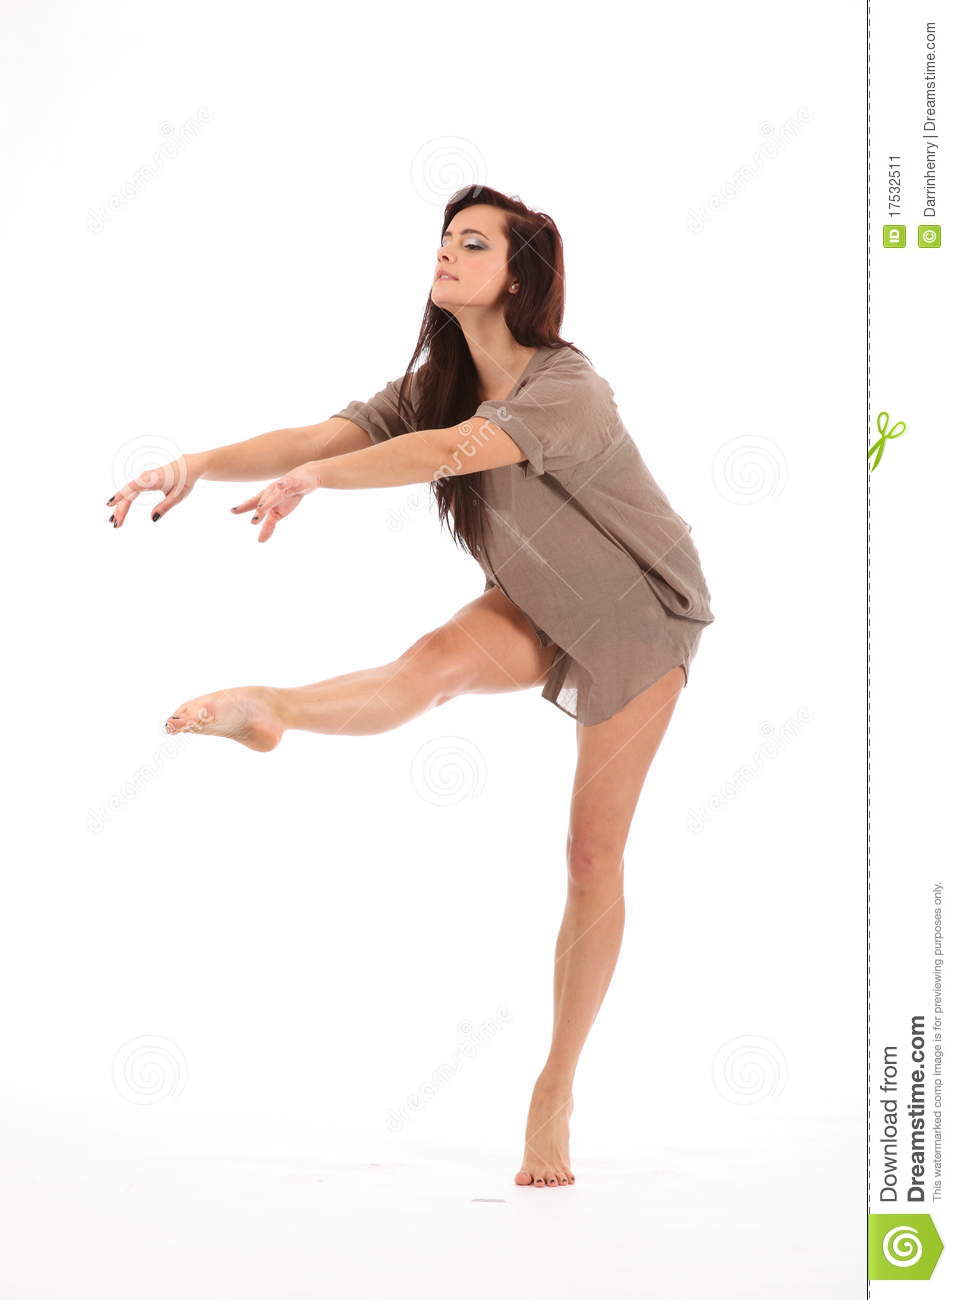 Female dancer with one leg raised toe pointed demonstrating dance